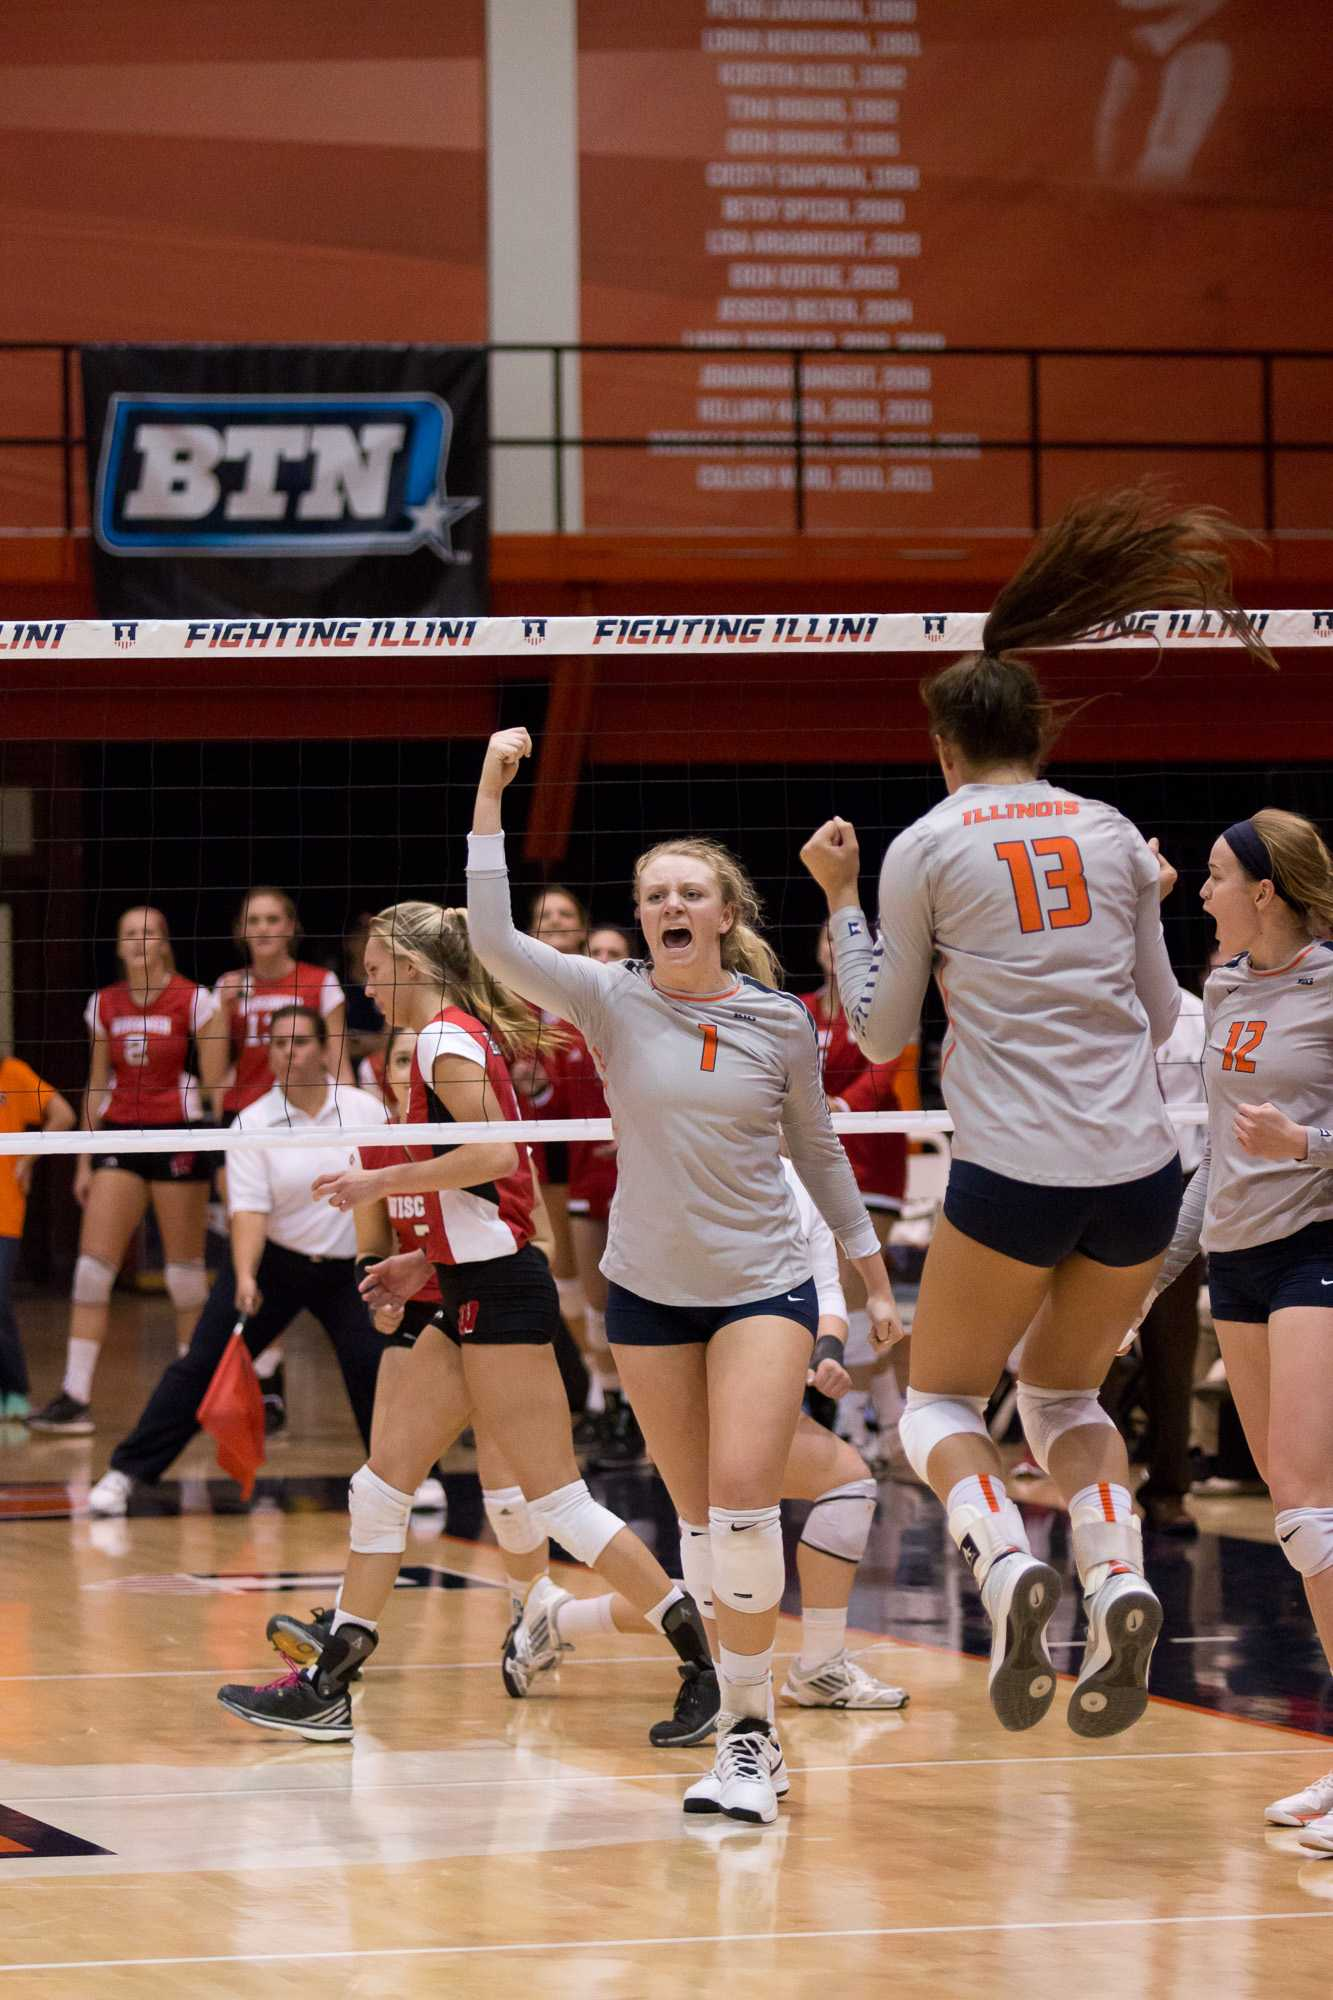 Illinois' Jordan Poulter celebrates after a kill during the match against Wisconsin at Huff Hall on Wednesday, Nov. 18, 2015. Illinois lost 3-2.